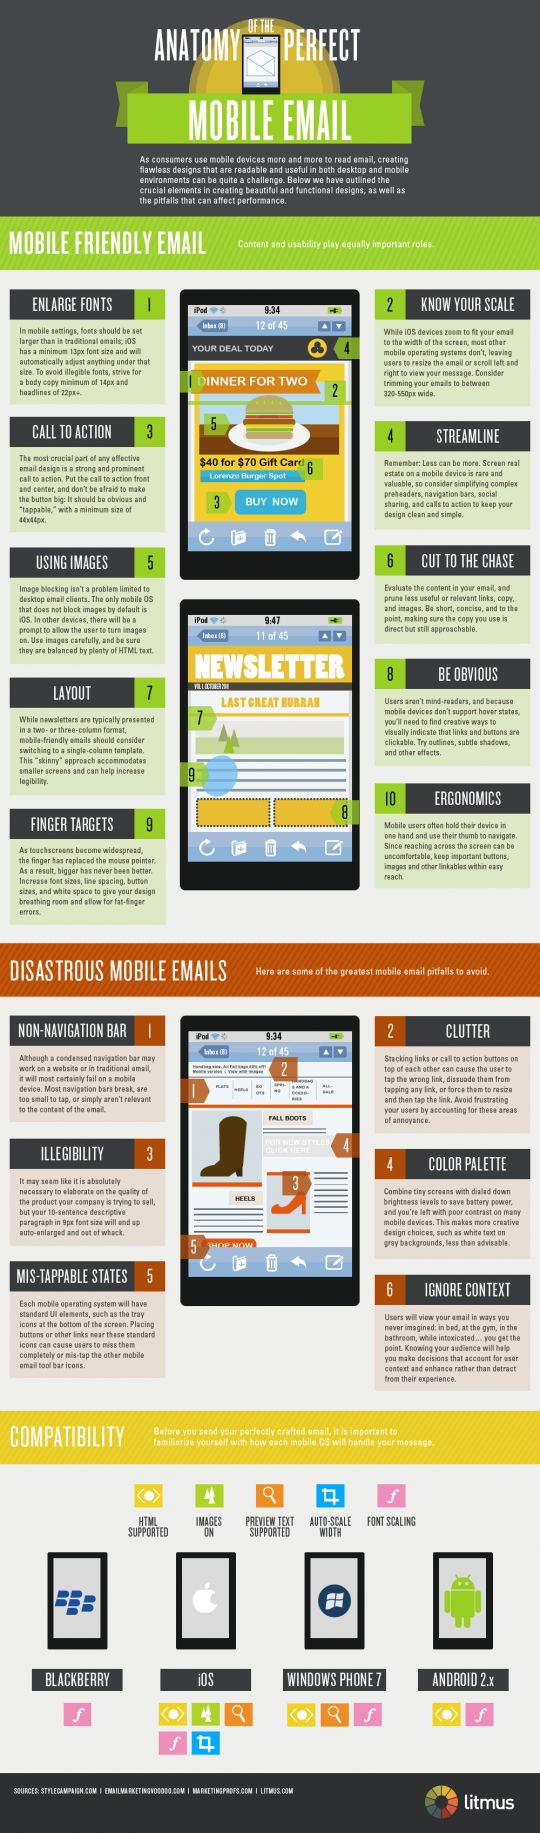 Anatomy of the Perfect Mobile E-Mail #Infographic